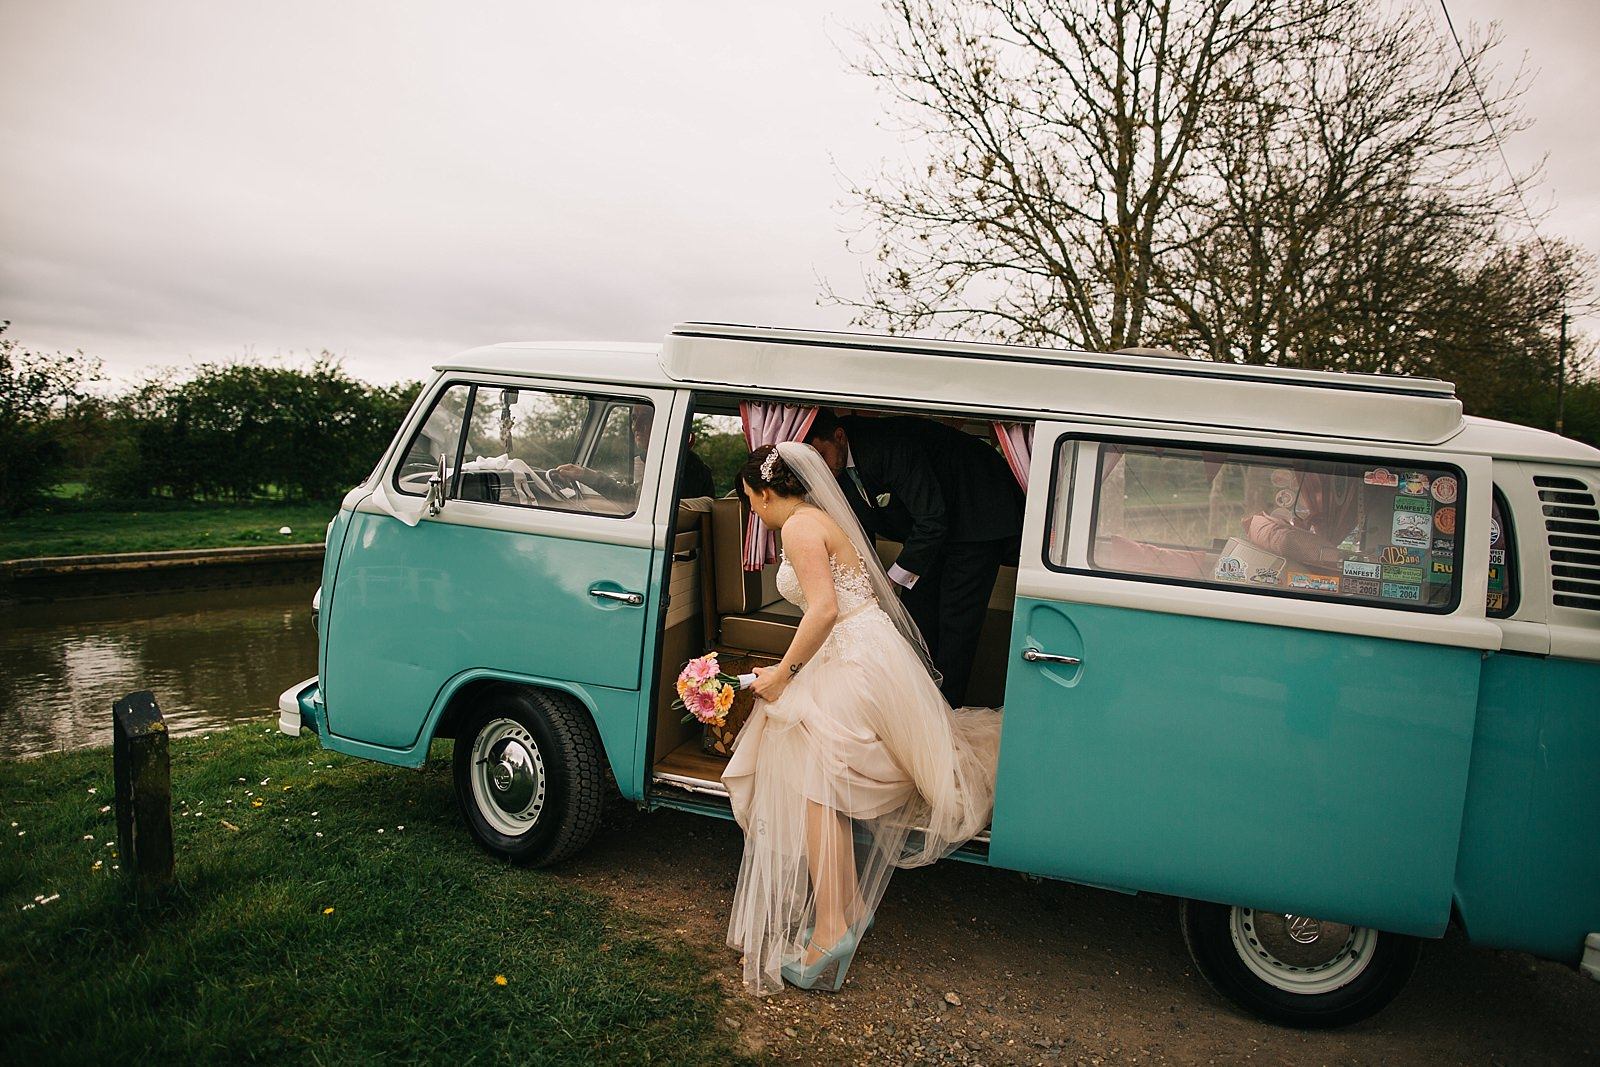 bride getting out of the camper van by the river